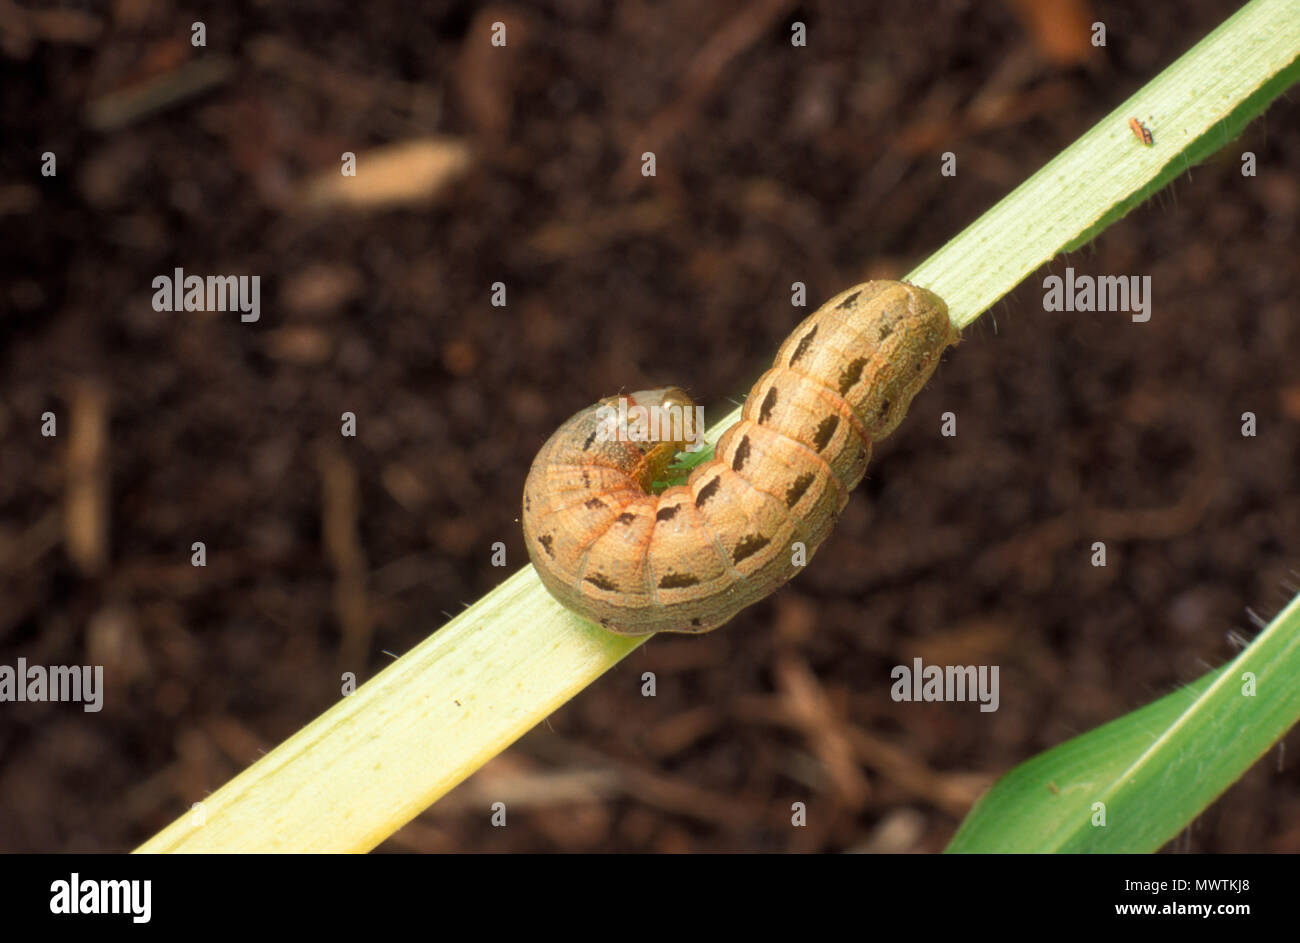 LAWN ARMYWORM (SPODOPTERA MAURITIA) ATTACKS GRASS AND SWEET CORN - Stock Image